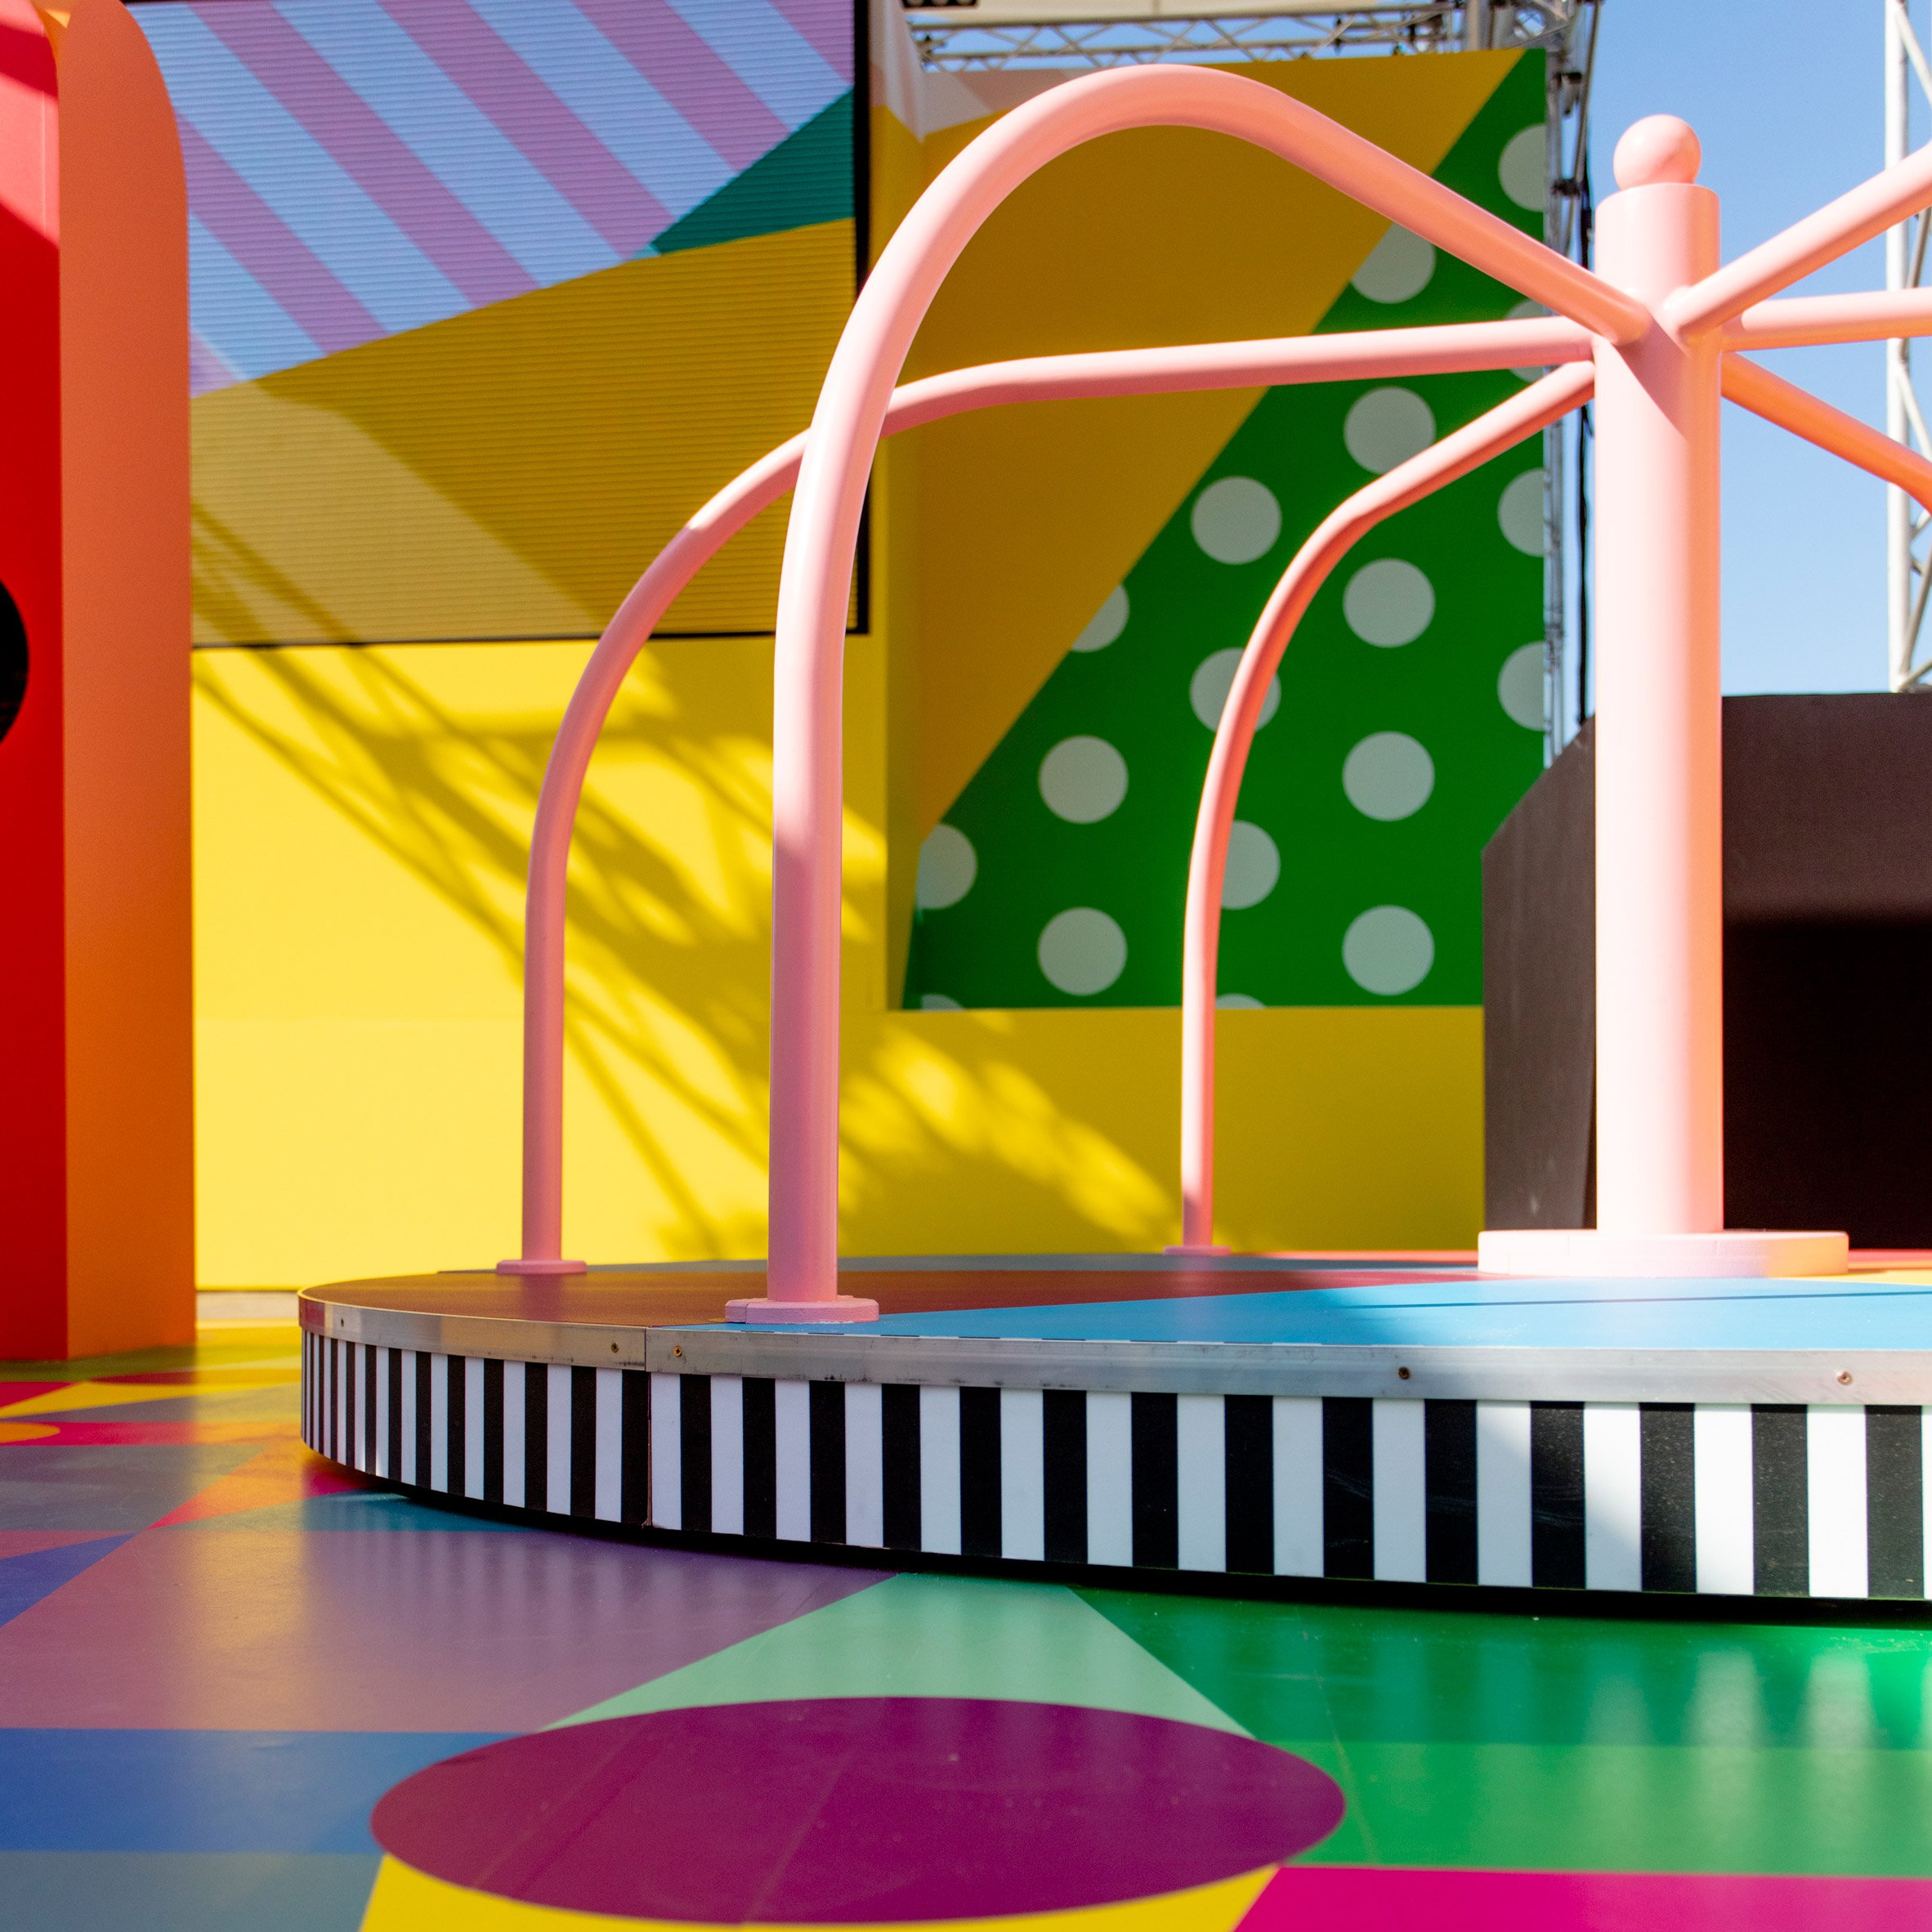 Dezeen's top 10 architecture trends 2019: Colourful playground installation for Pinterest at Cannes Lions by Yinka Ilori